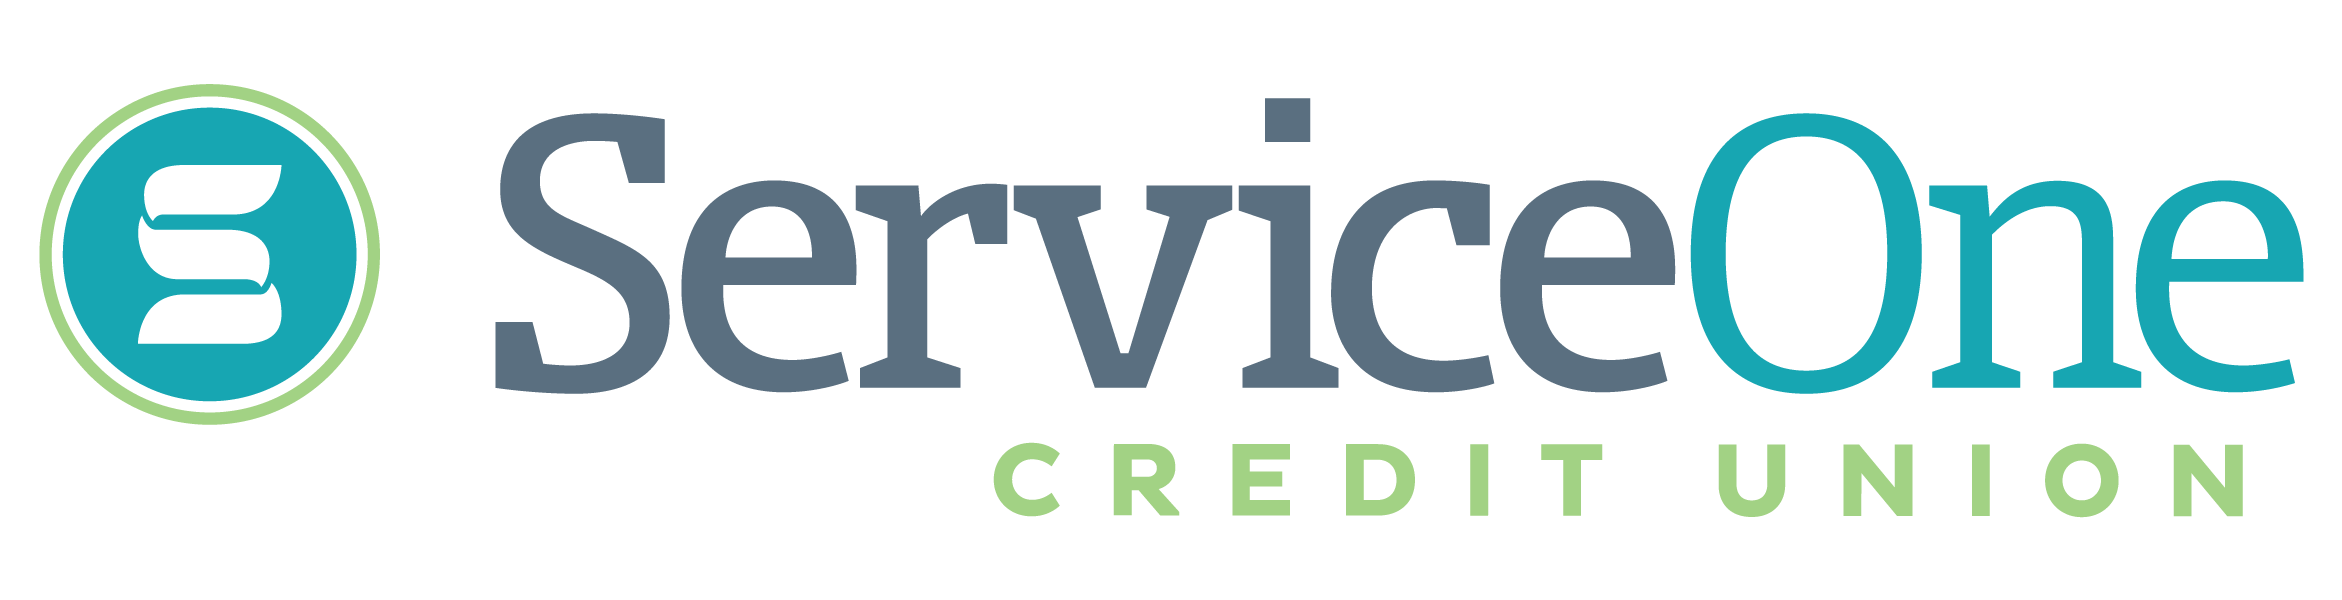 Service One Credit Union